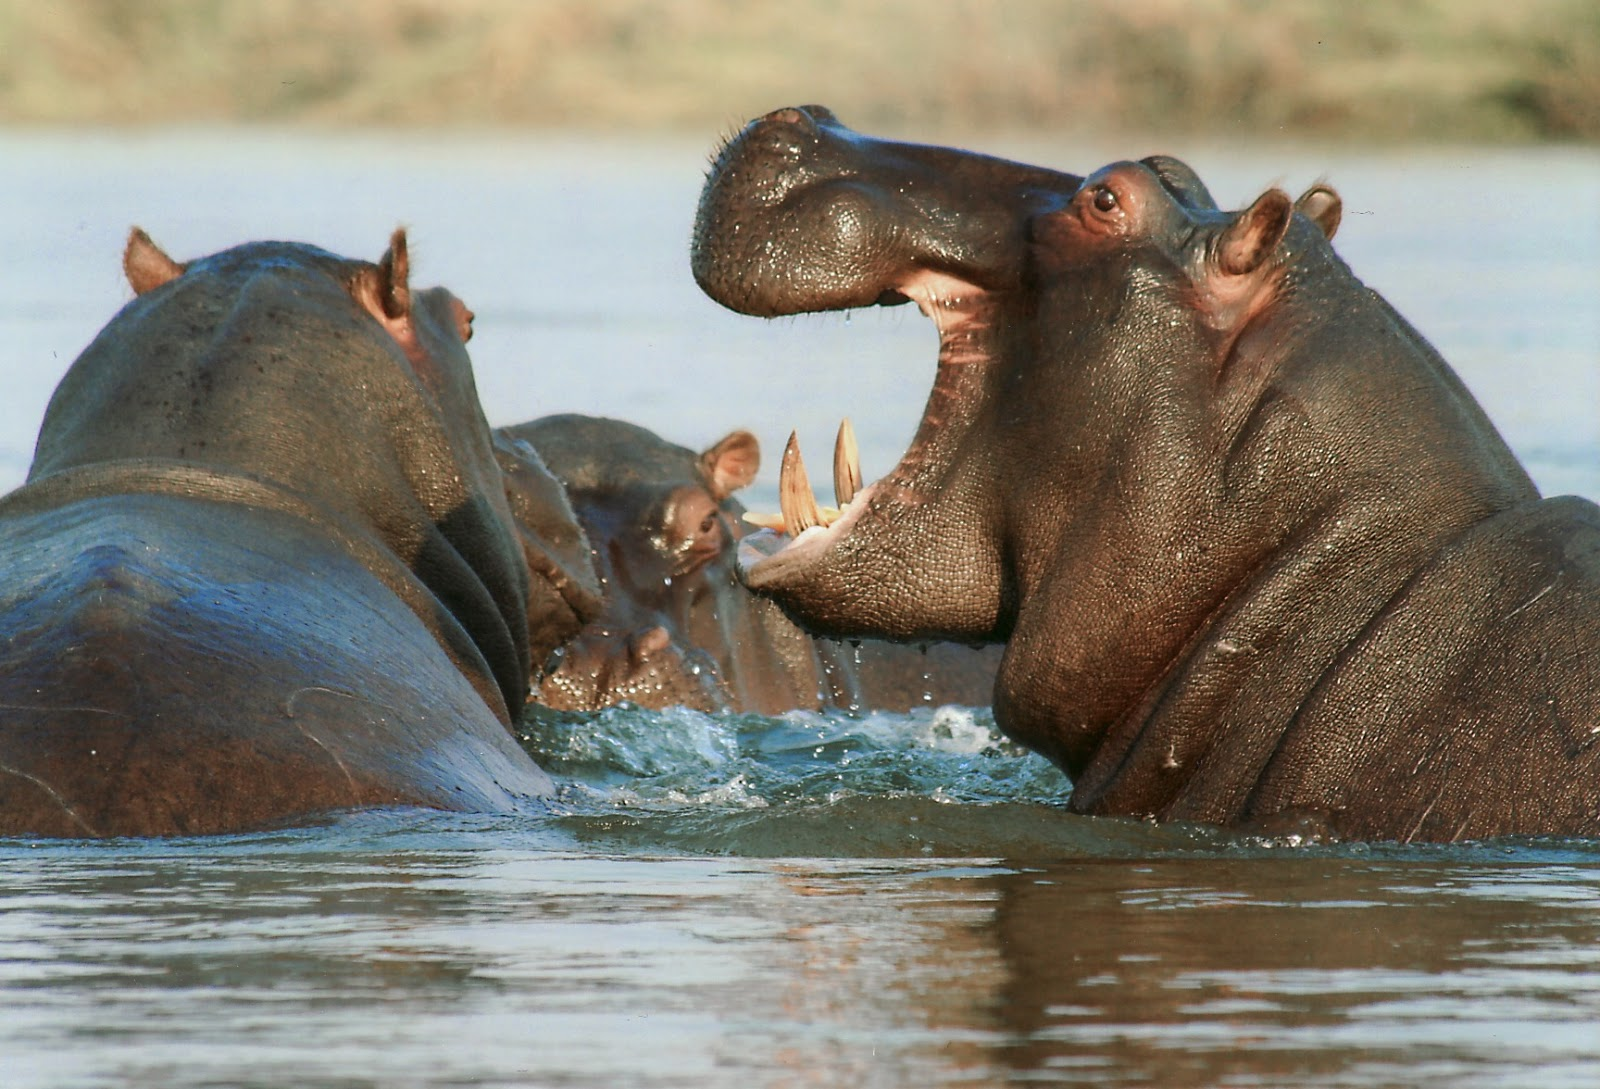 A picture of hippos in the water.